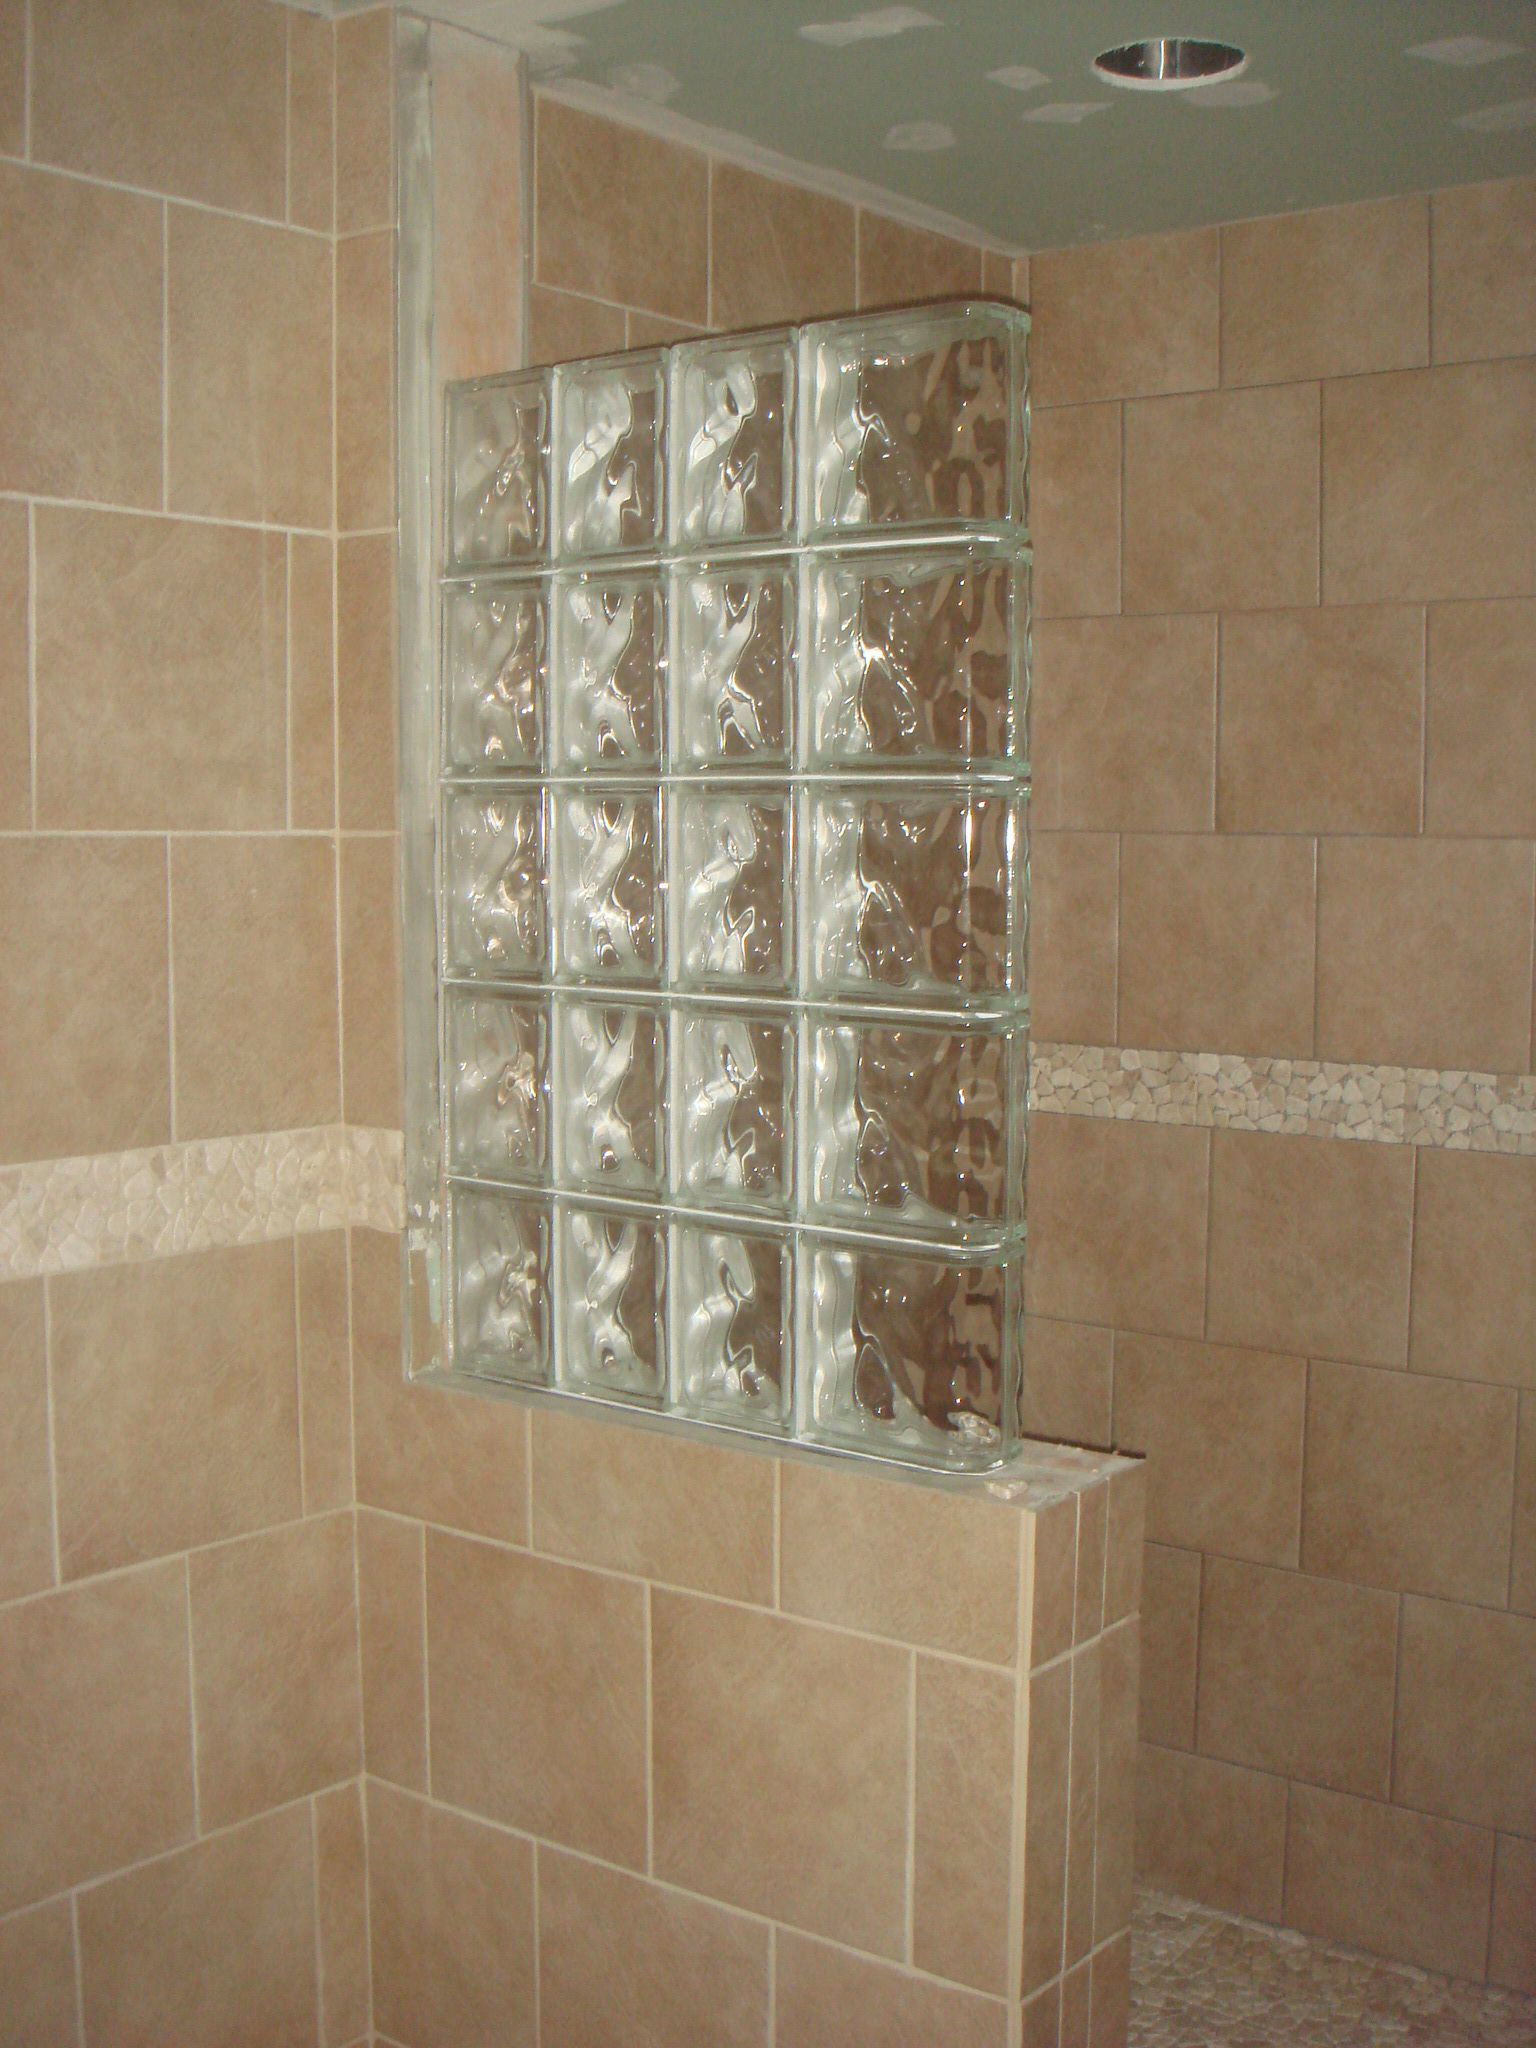 Half wall shower design an addition some glass block wall and much of the grouting is done